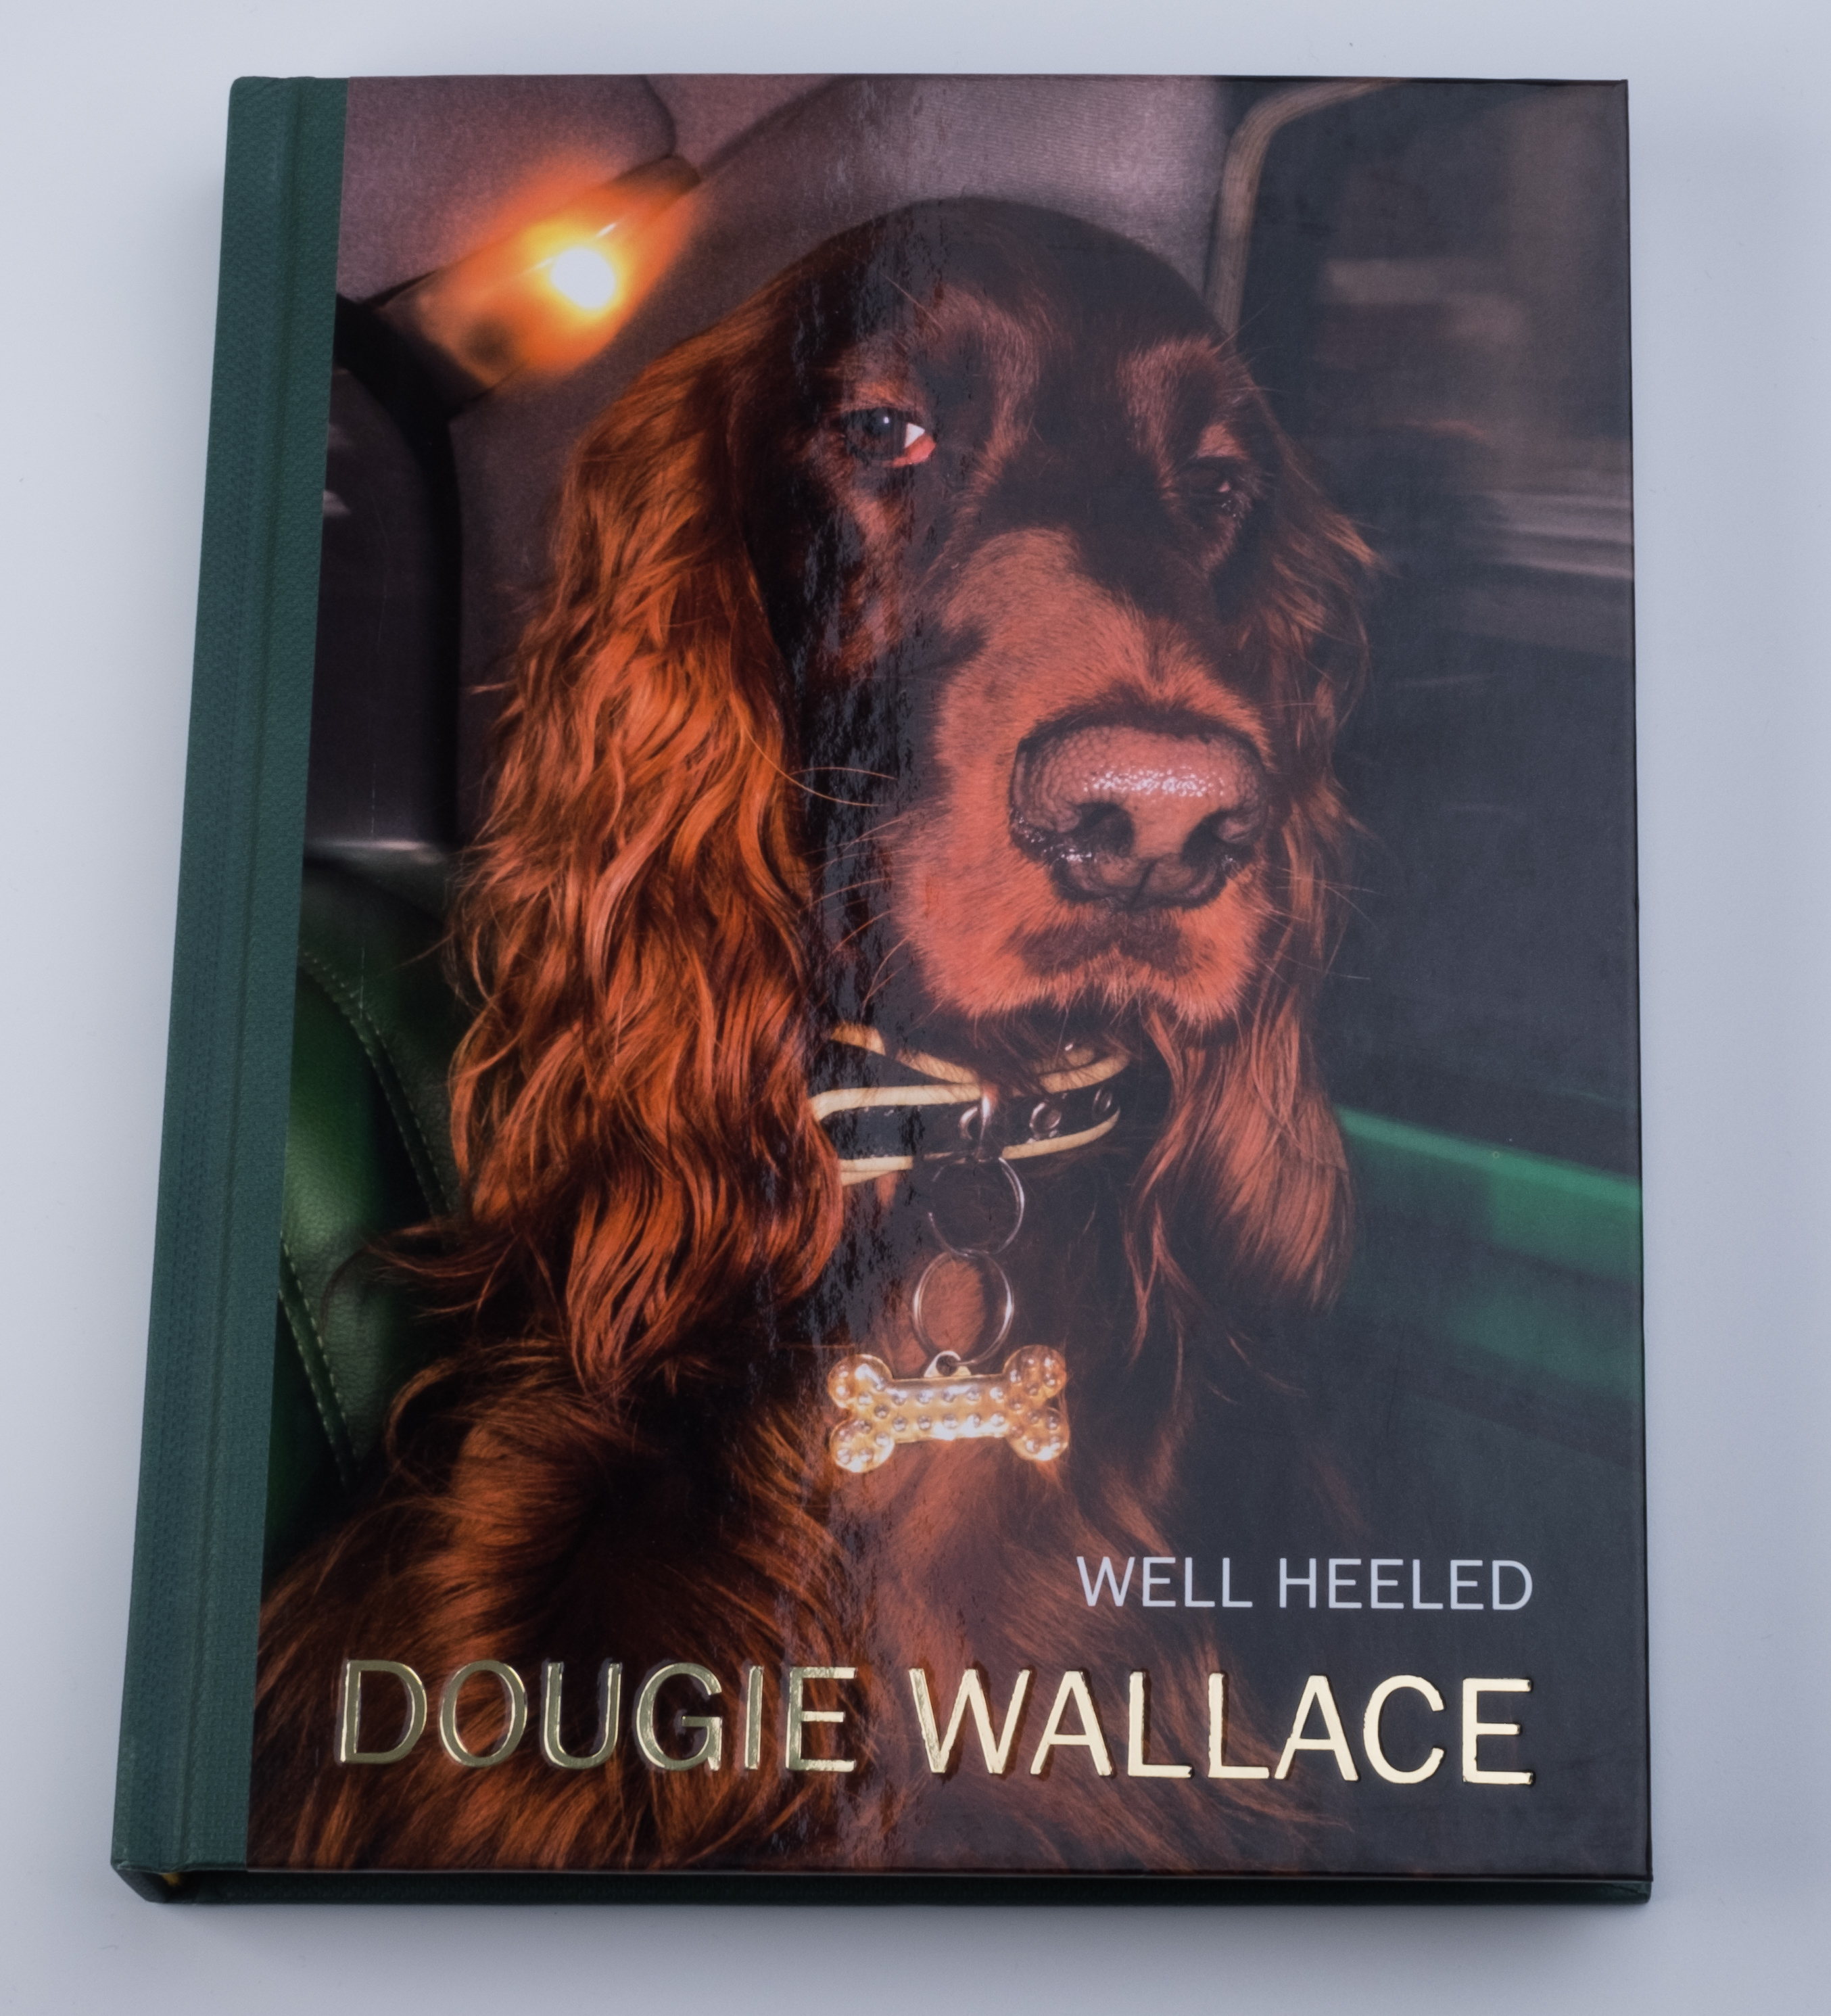 DOUGIE WALLACE - Well Heeled